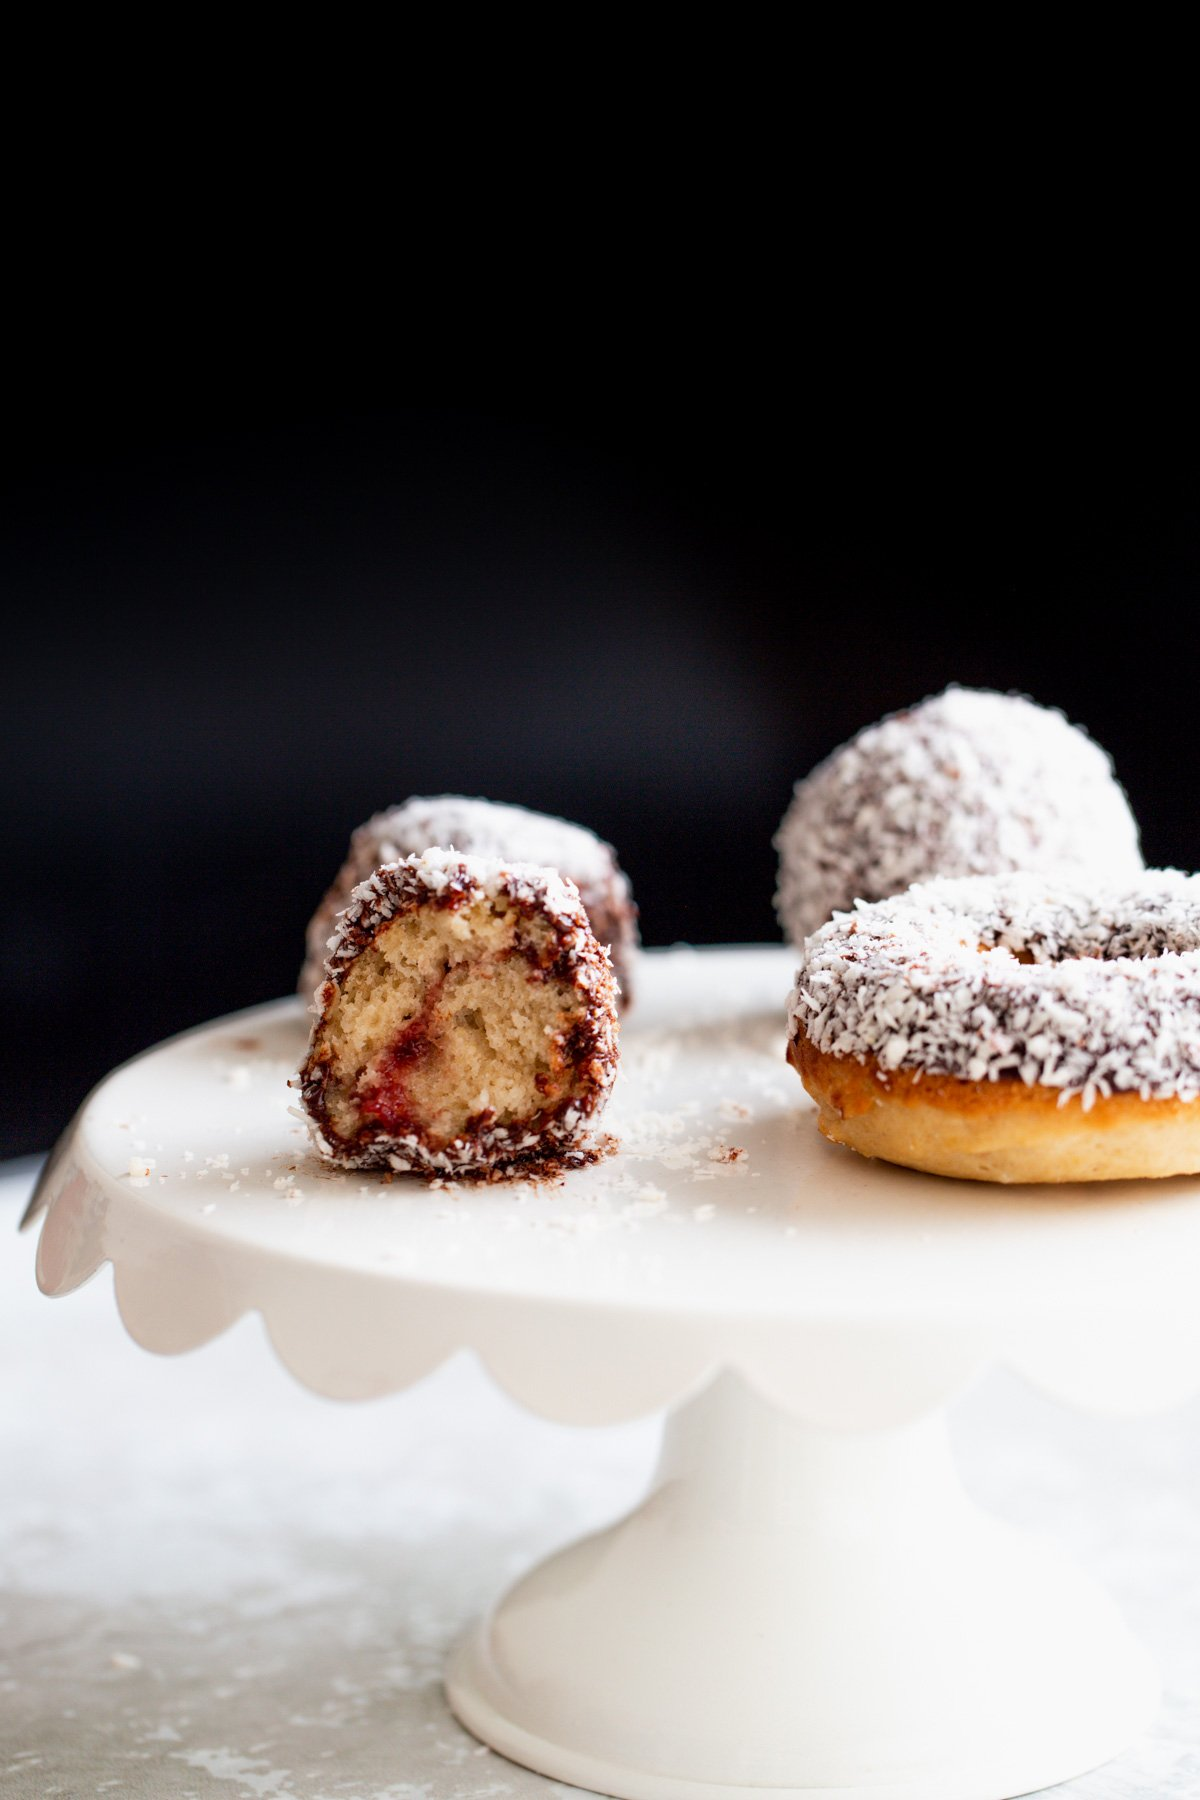 side view of a vegan lamington donut hole with one bite taken